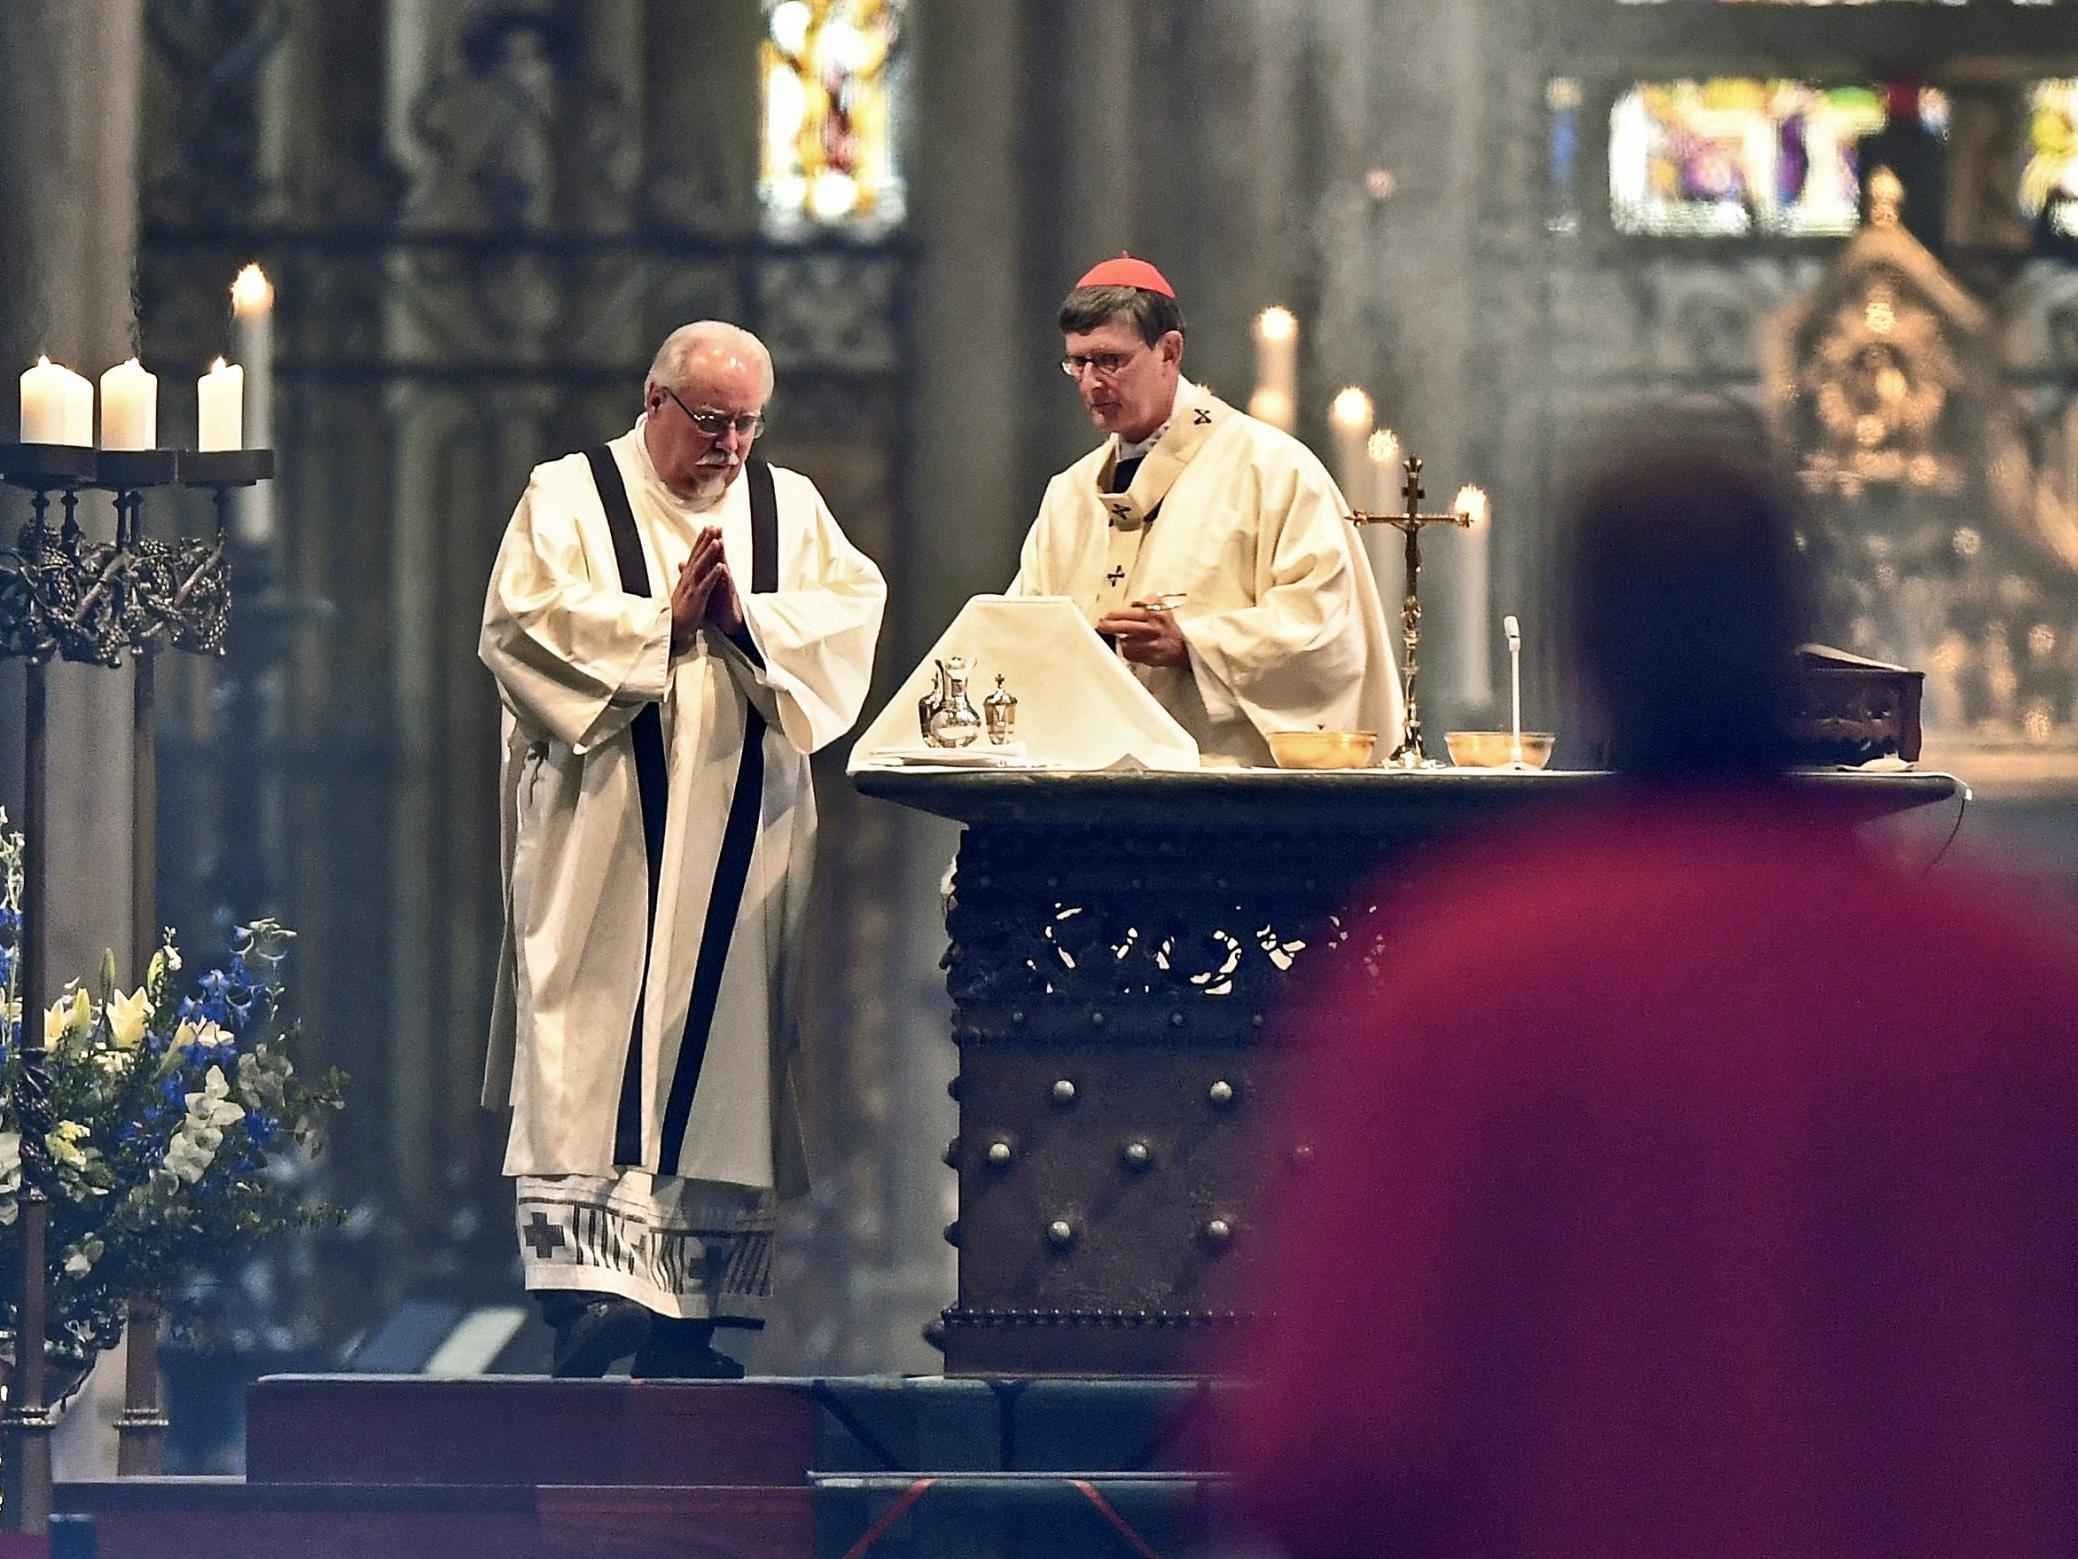 Churches reopen in Germany - but no singing allowed photo